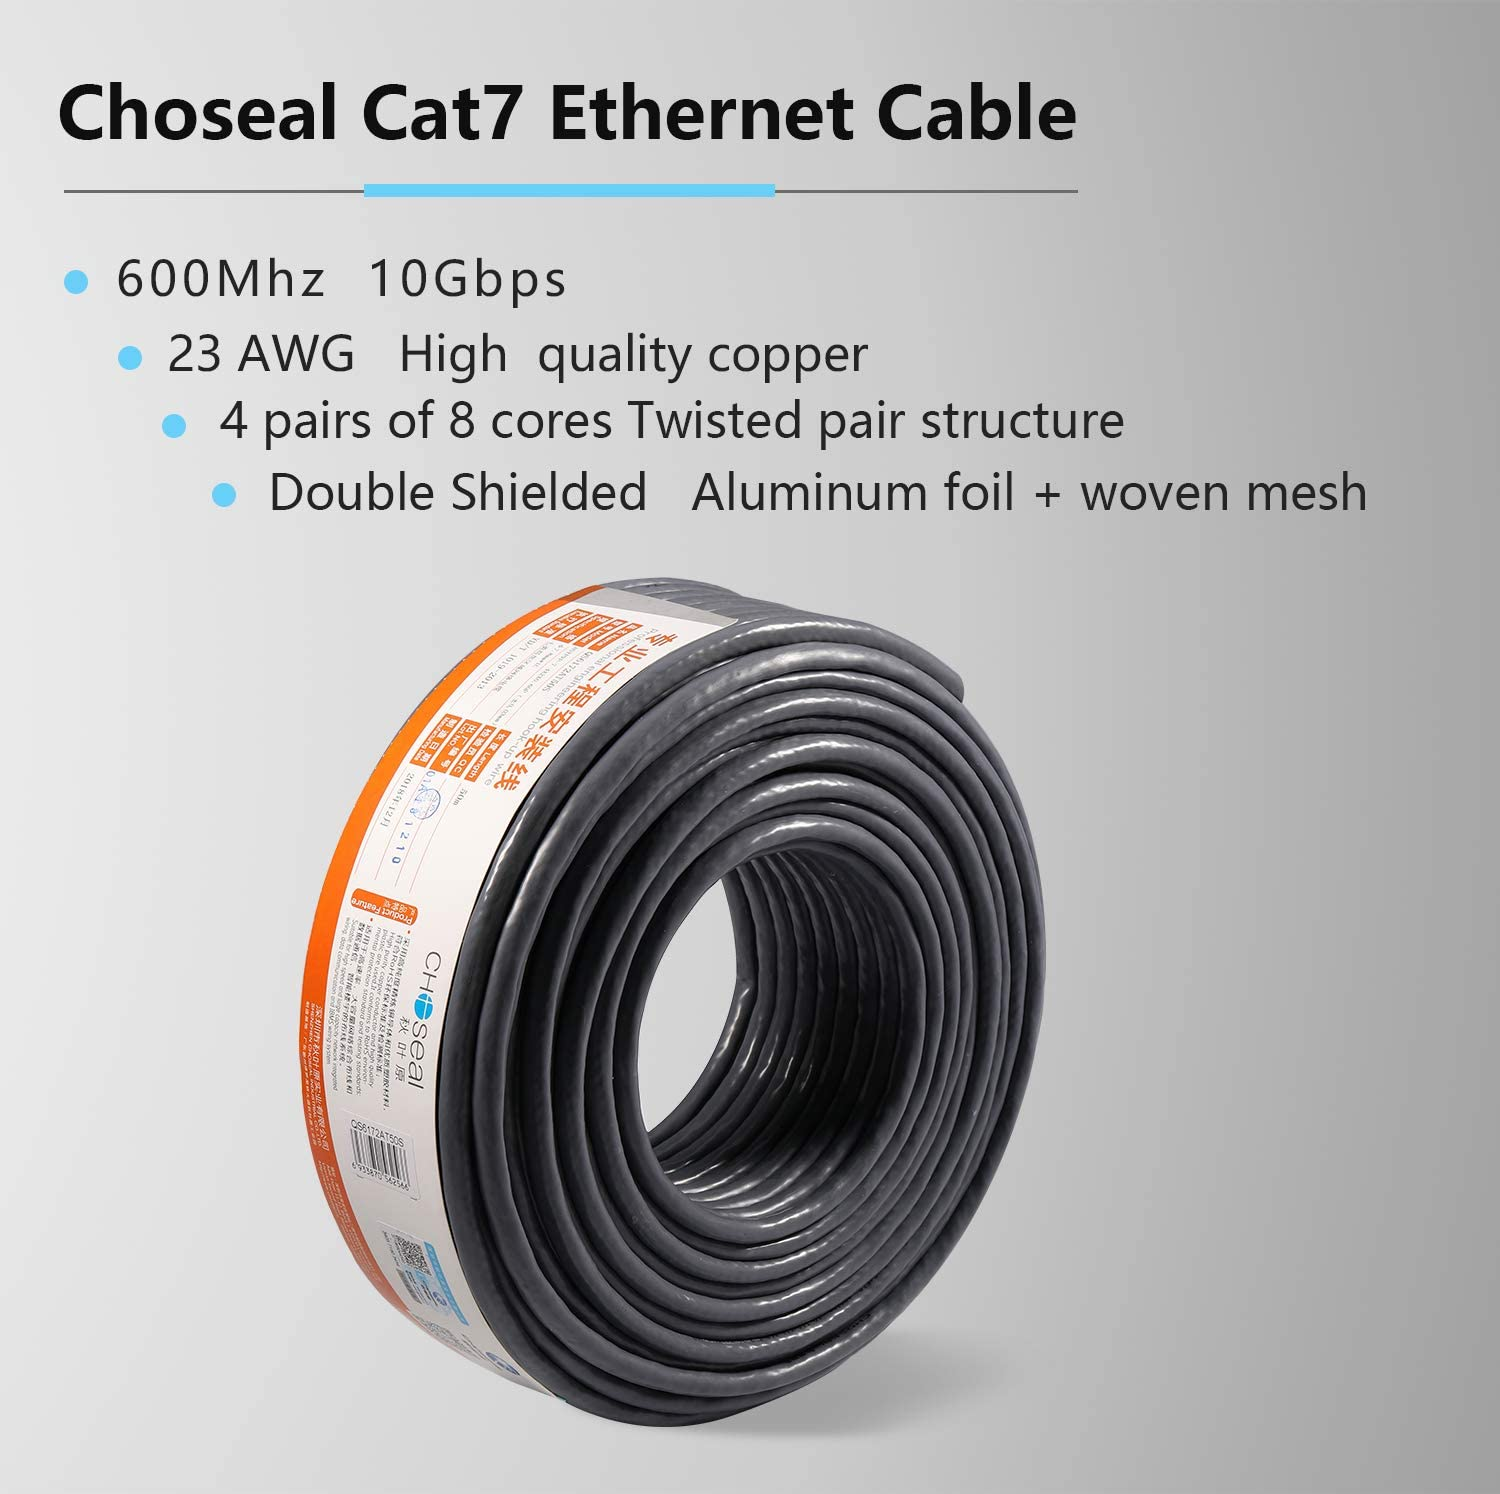 Length CHENZHIQIANG Network Accessories LAN Cable Tools CAT7 Gold Plated Dual Shielded Full Copper LAN Network Cable 5m